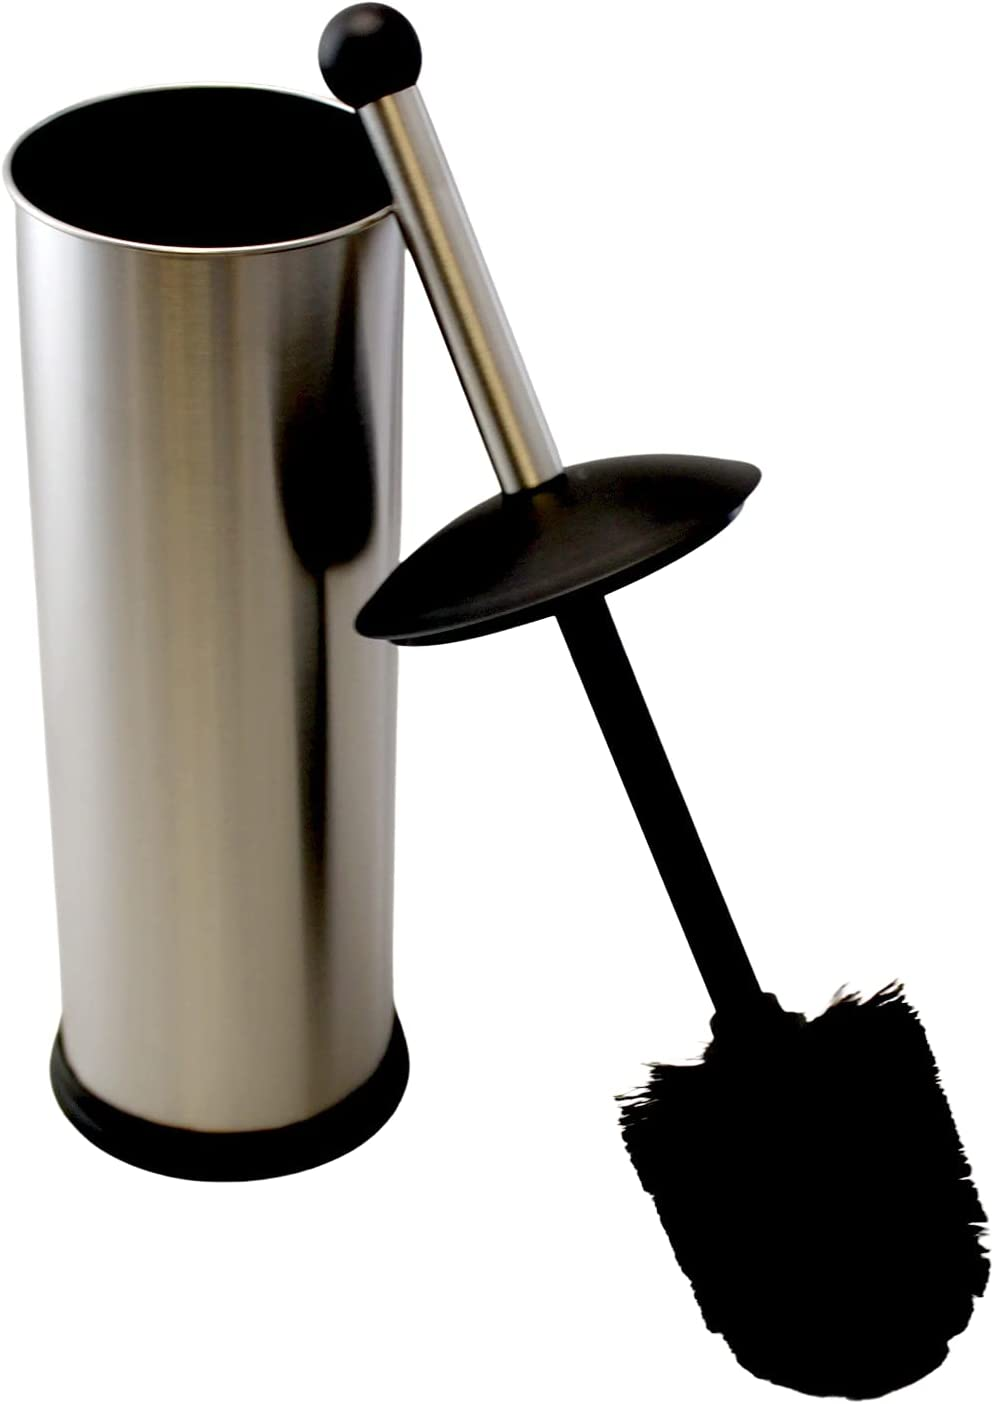 Brushed Stainless Steel Toilet Brush Max 86% OFF Freestandin Holder Classic Set with